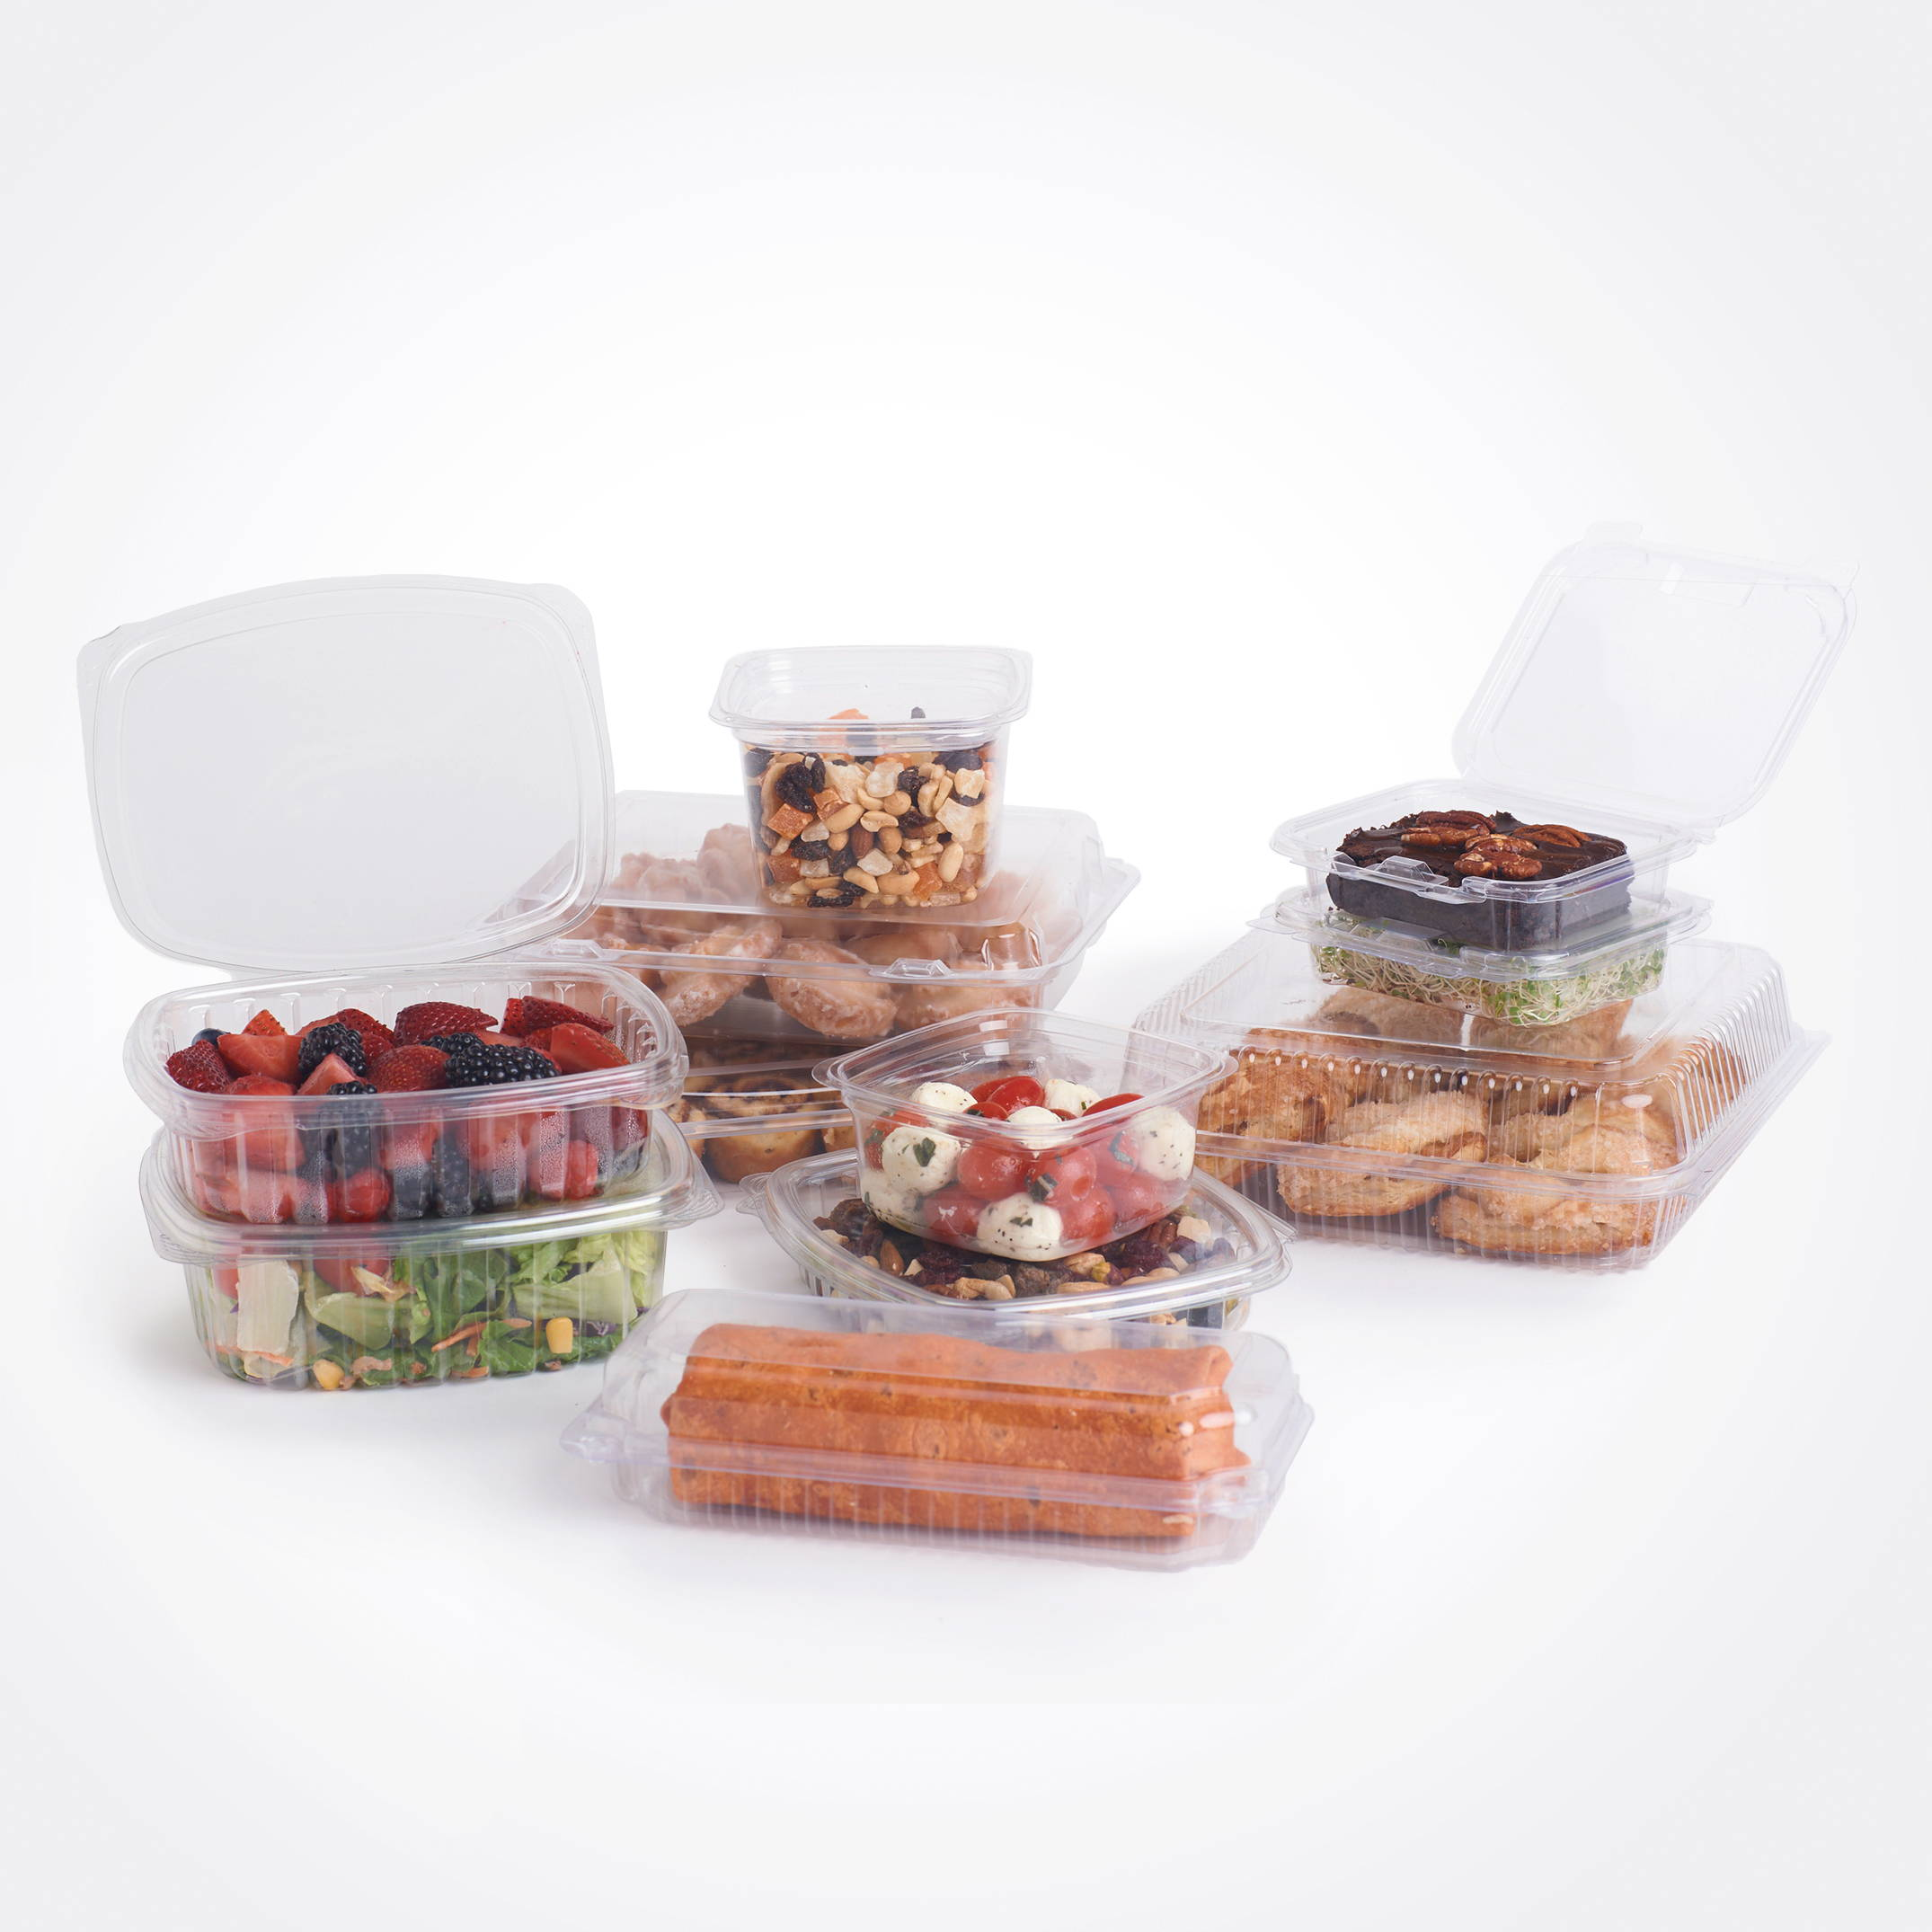 plant based food packaging in canada